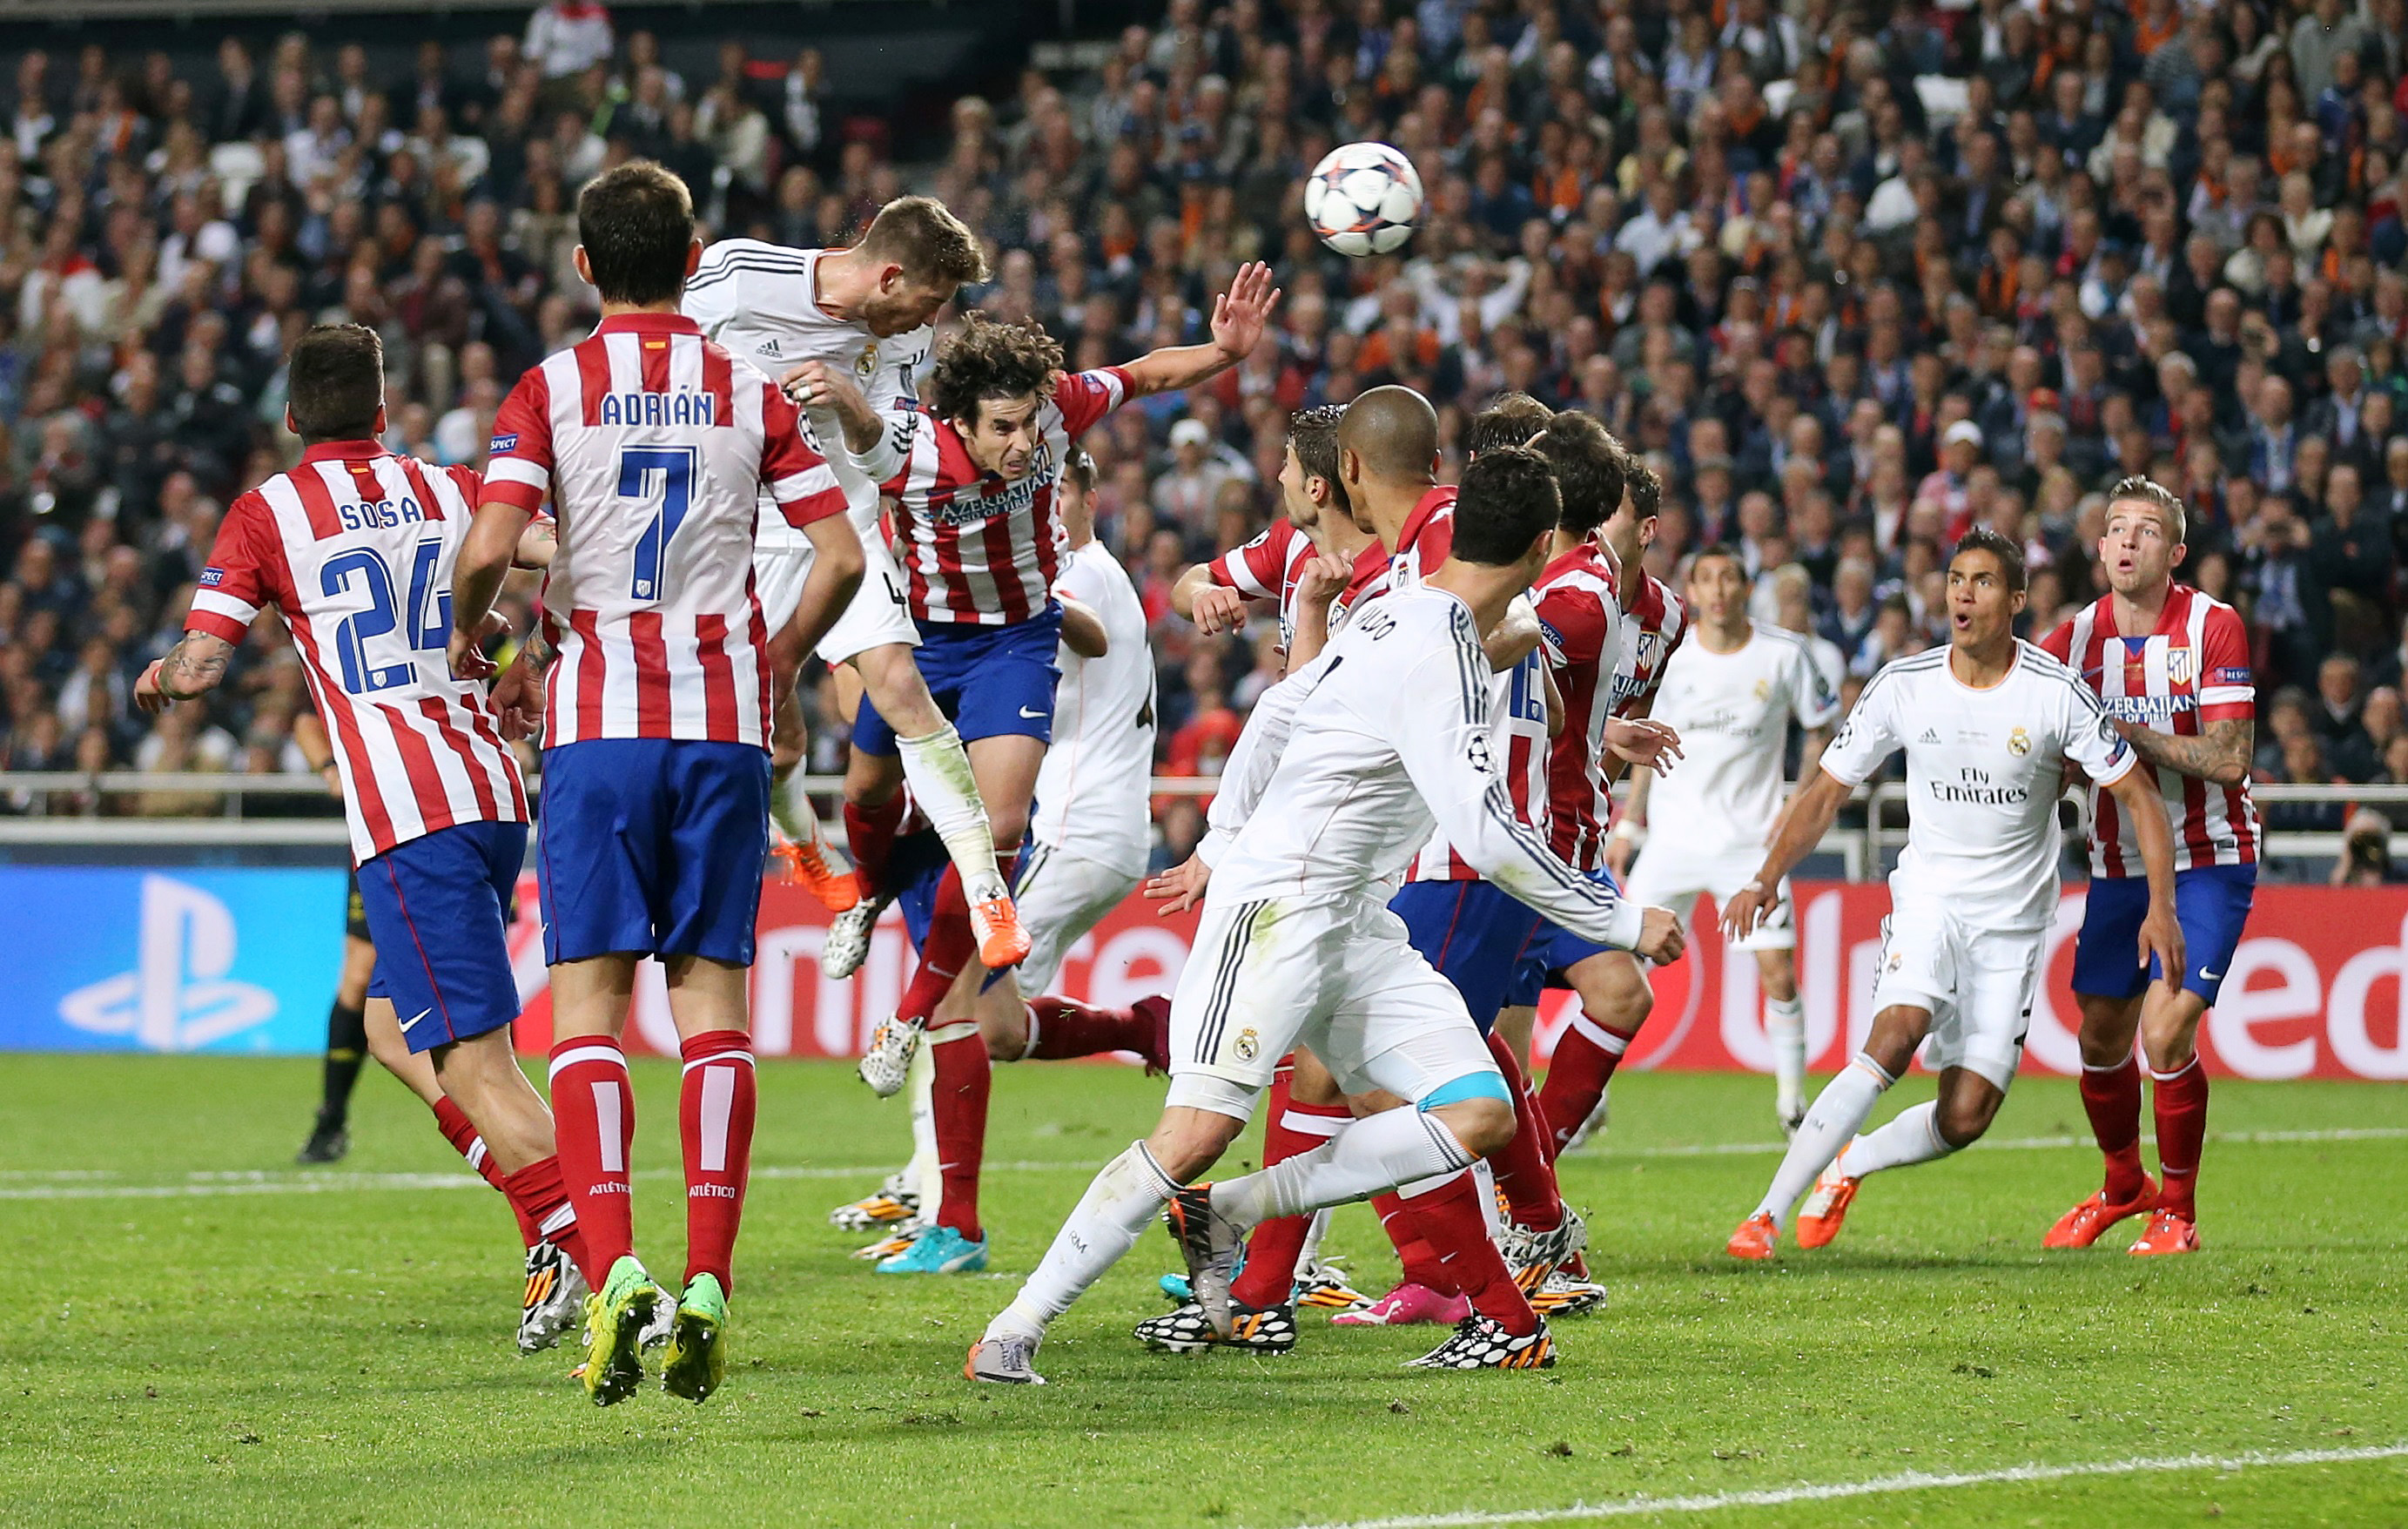 Football - Ligue des champions - Quand le Real Madrid remportait la Decima